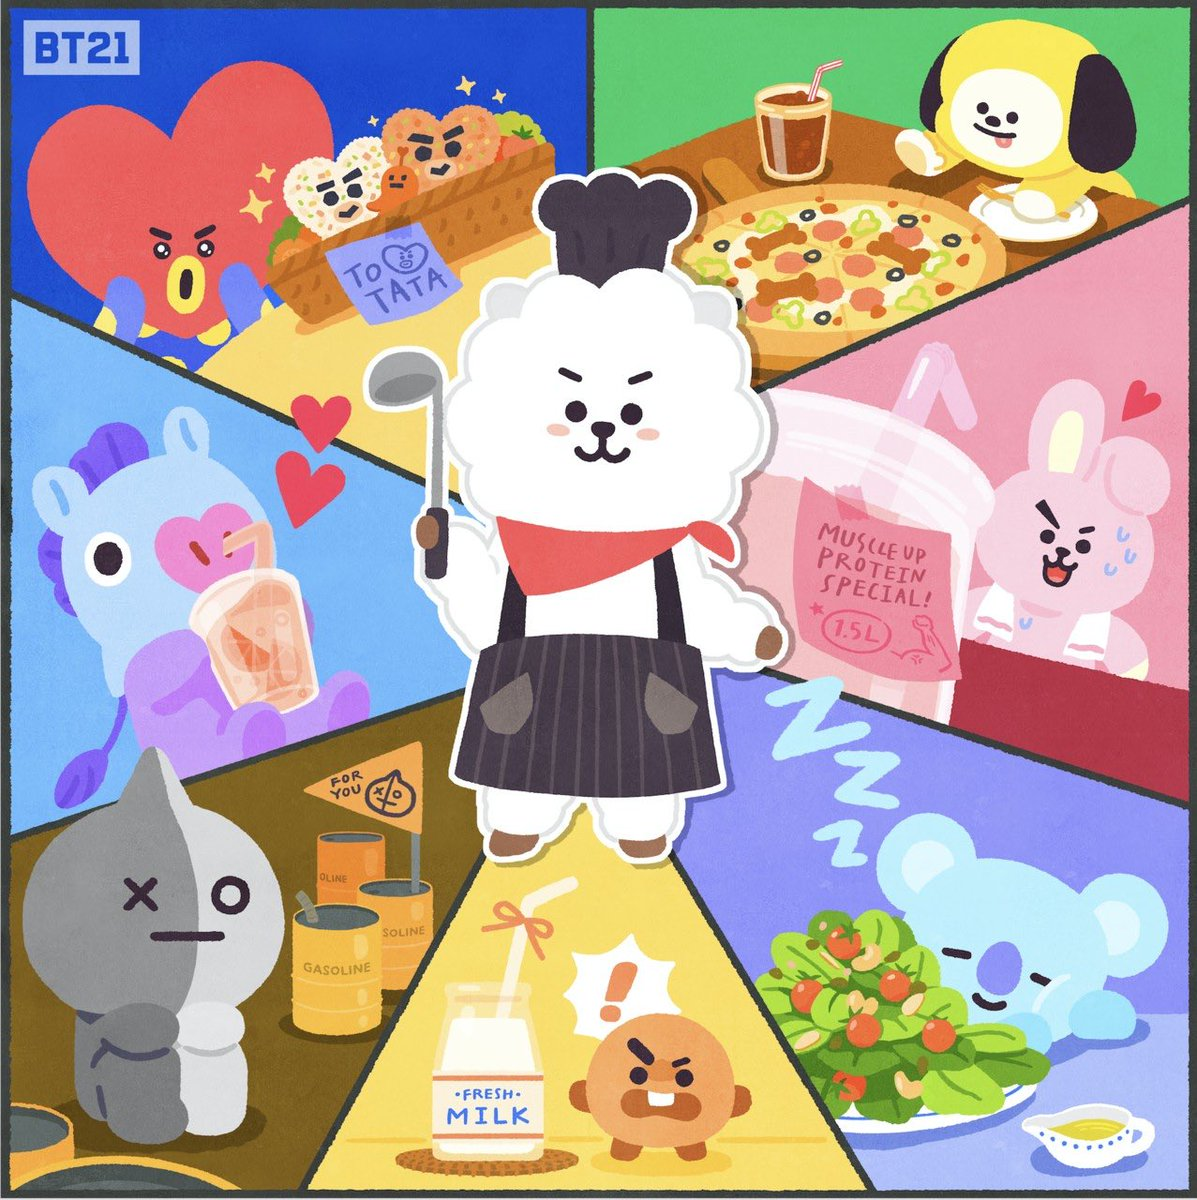 Cooking skill level up! Perfect dishes for each❓⁉️ #Noo #SHOOKY #Cook #RJ #BT21